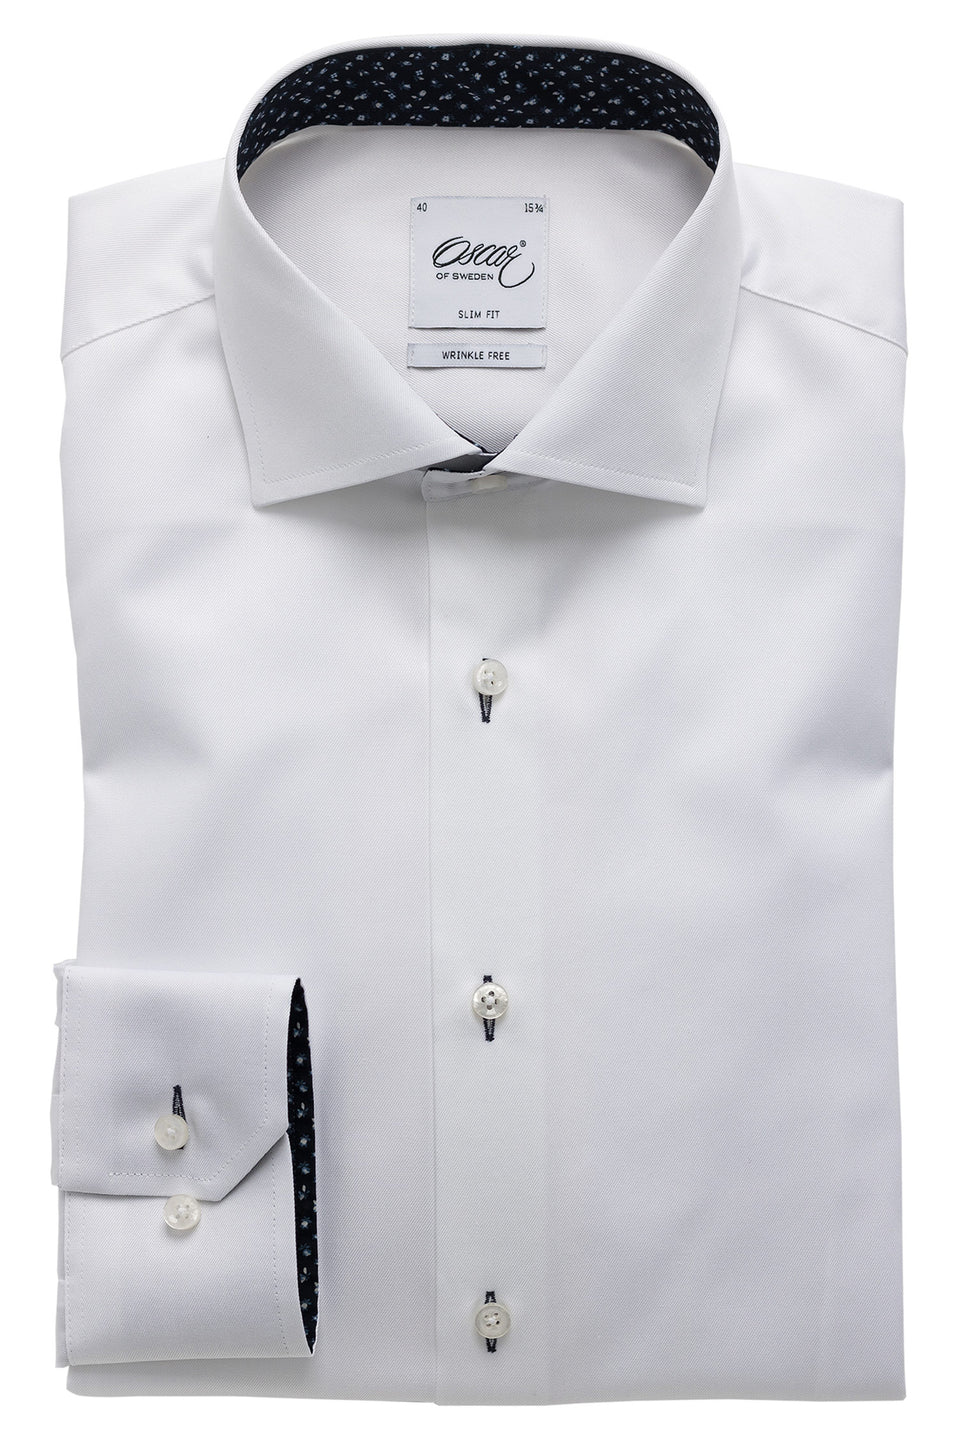 White slim shirt with navy details